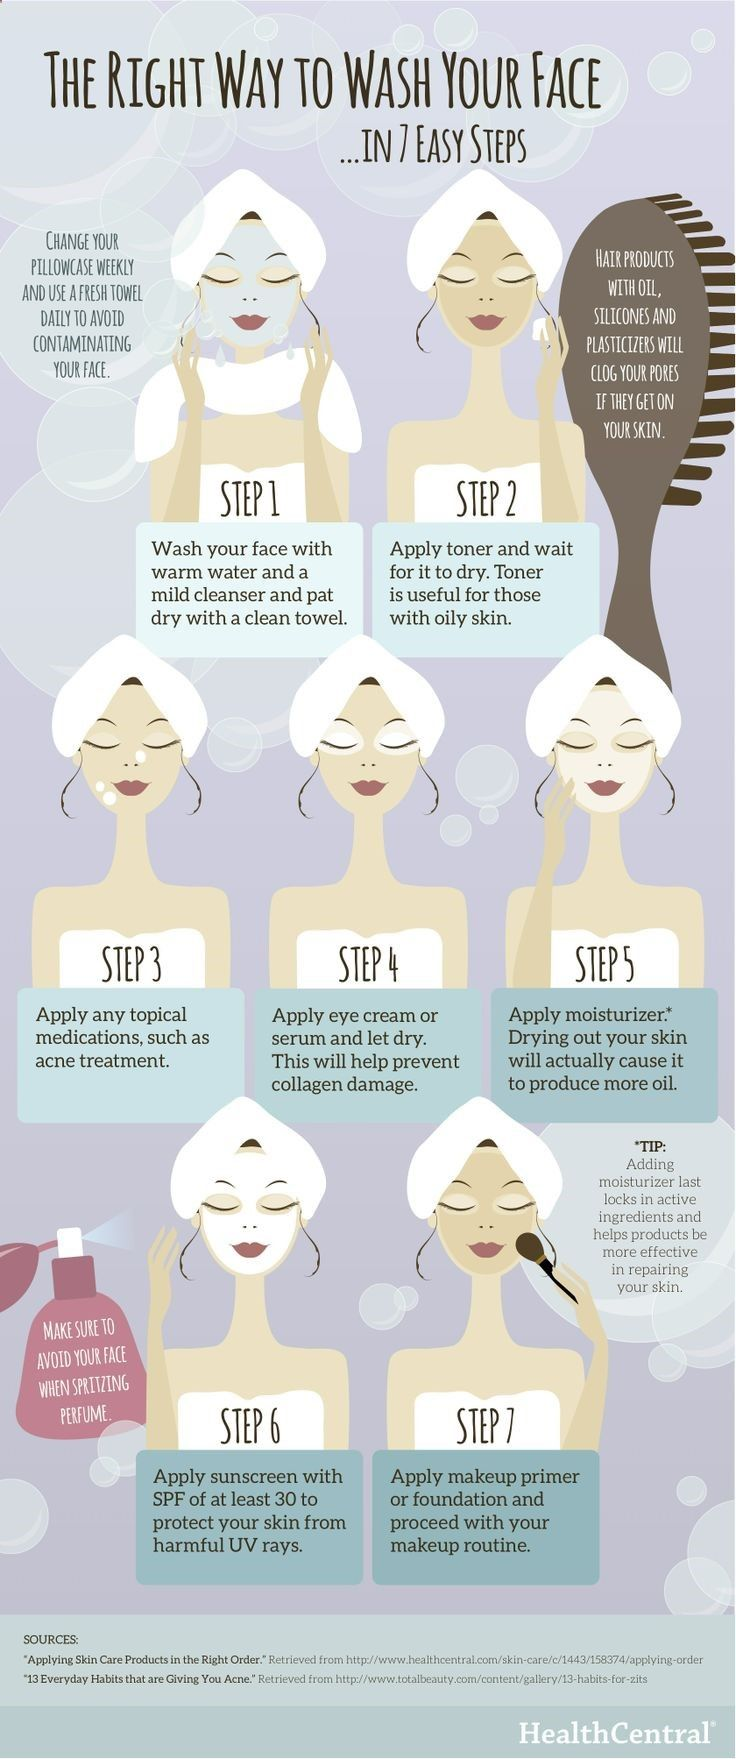 how to wash you face to take proper care of it and help ...